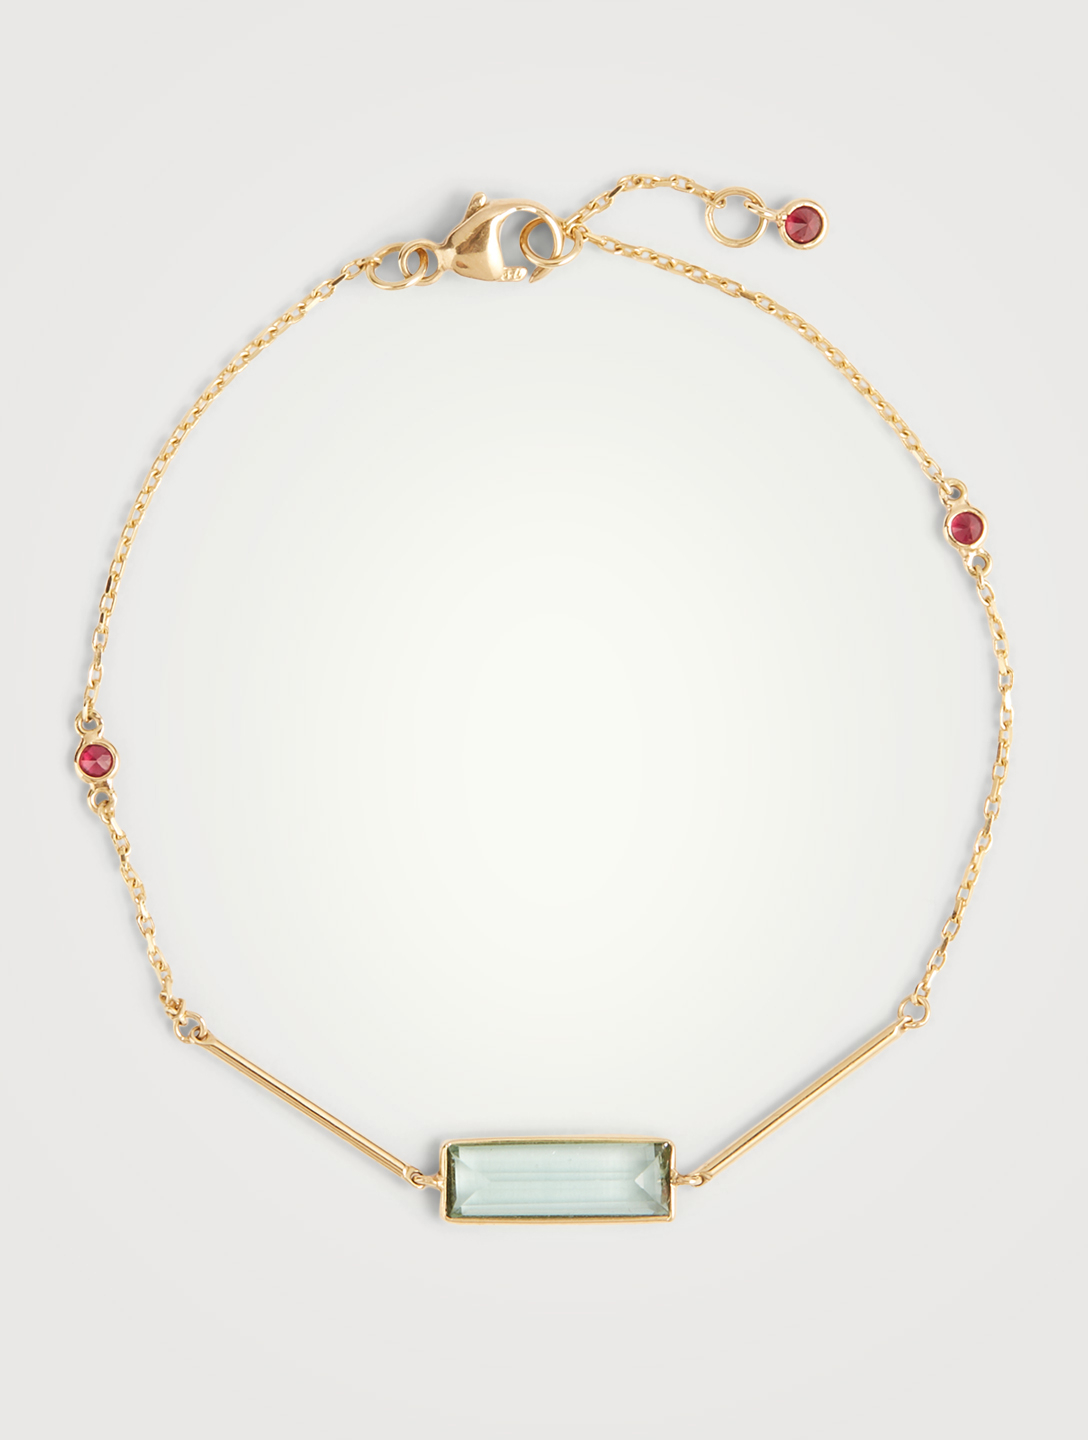 YI COLLECTION 18K Gold Green Bar Bracelet With Tourmaline And Ruby Women's Metallic